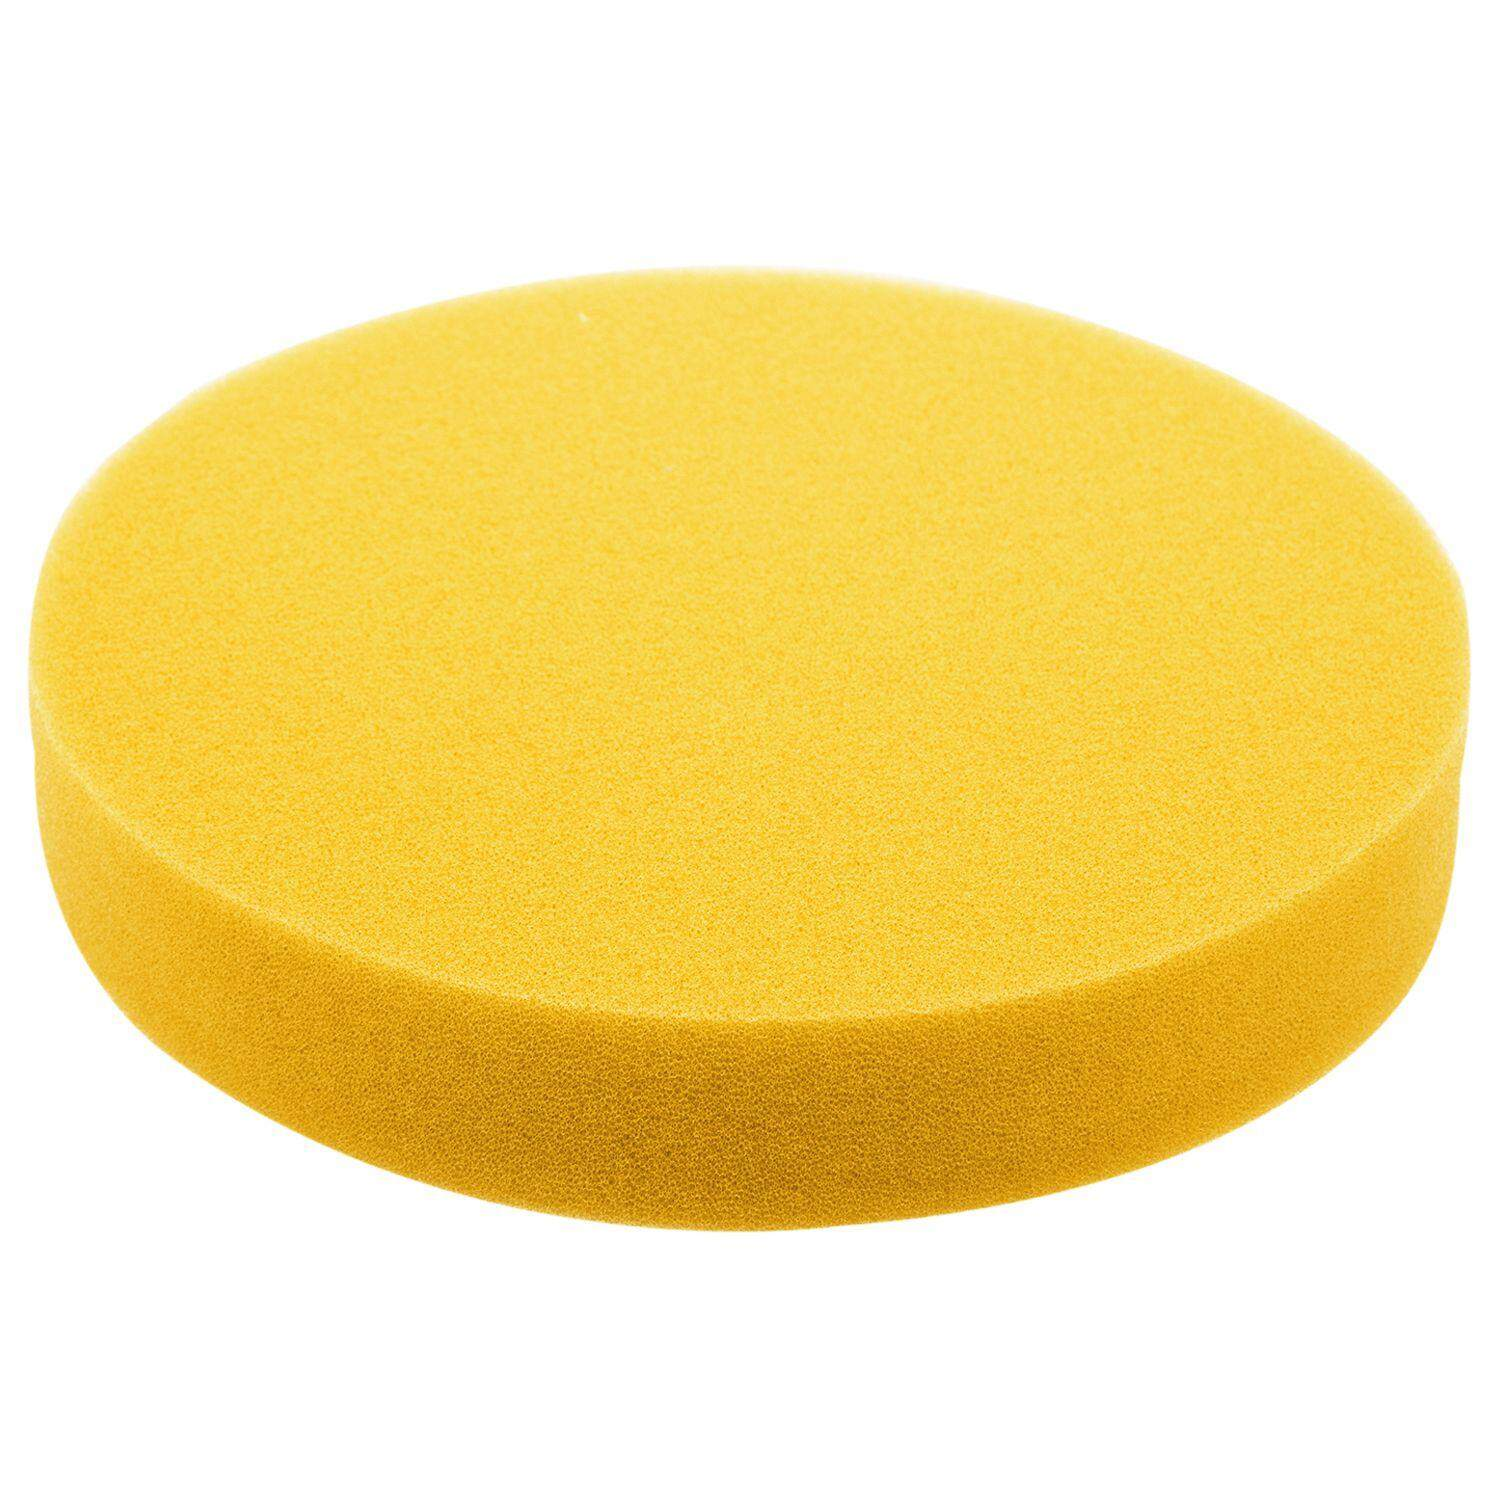 6 Inch 150mm Soft Flat Sponge Buffer Polishing Pad Kit For Auto Car Polisher Color:yellow By Yomichew.